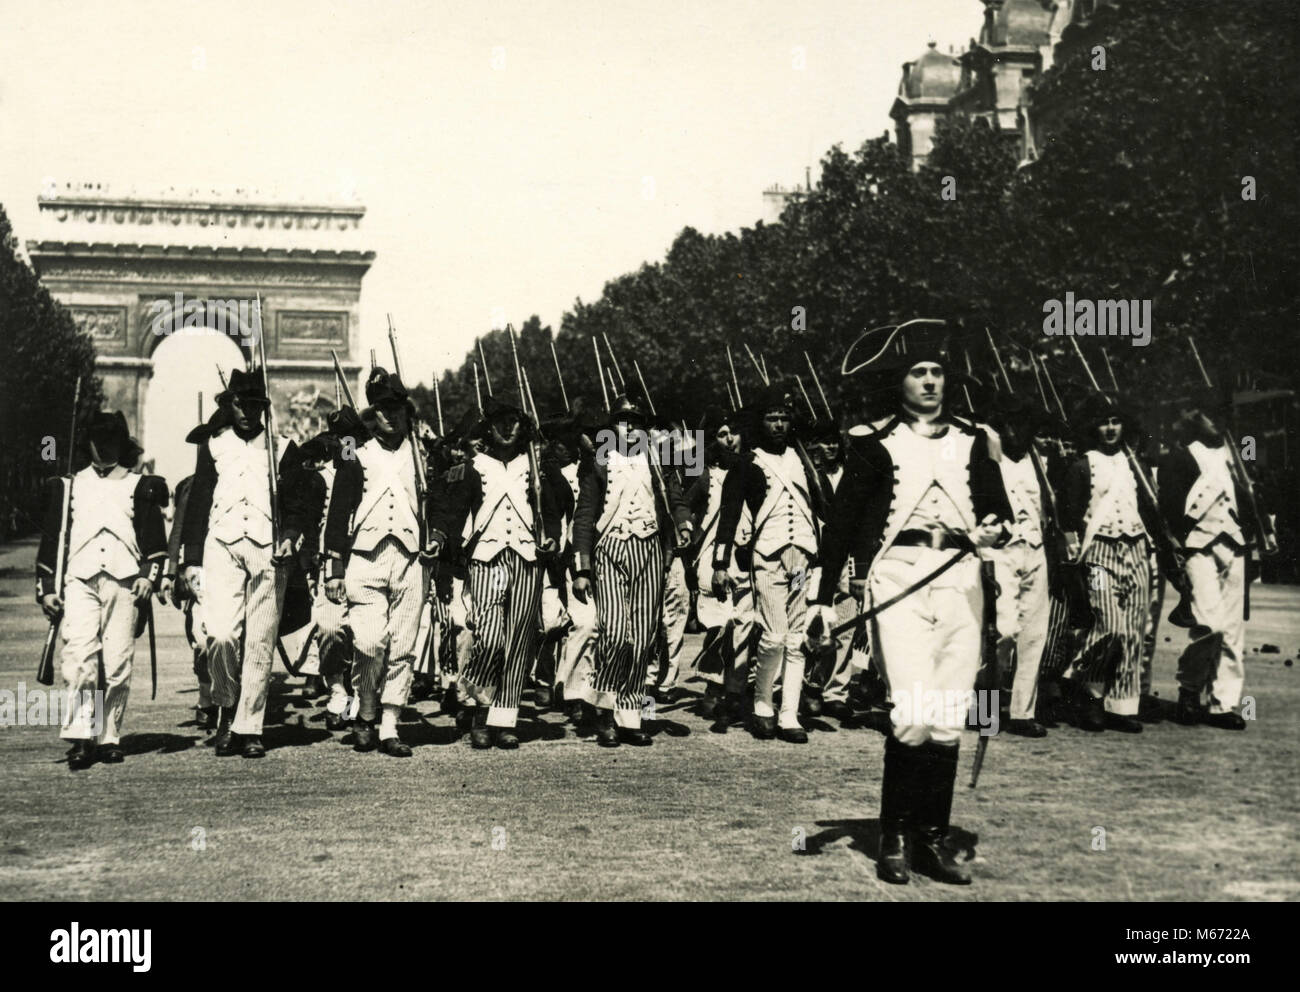 The French soldiers of Revolution, Paris, France 1930s - Stock Image